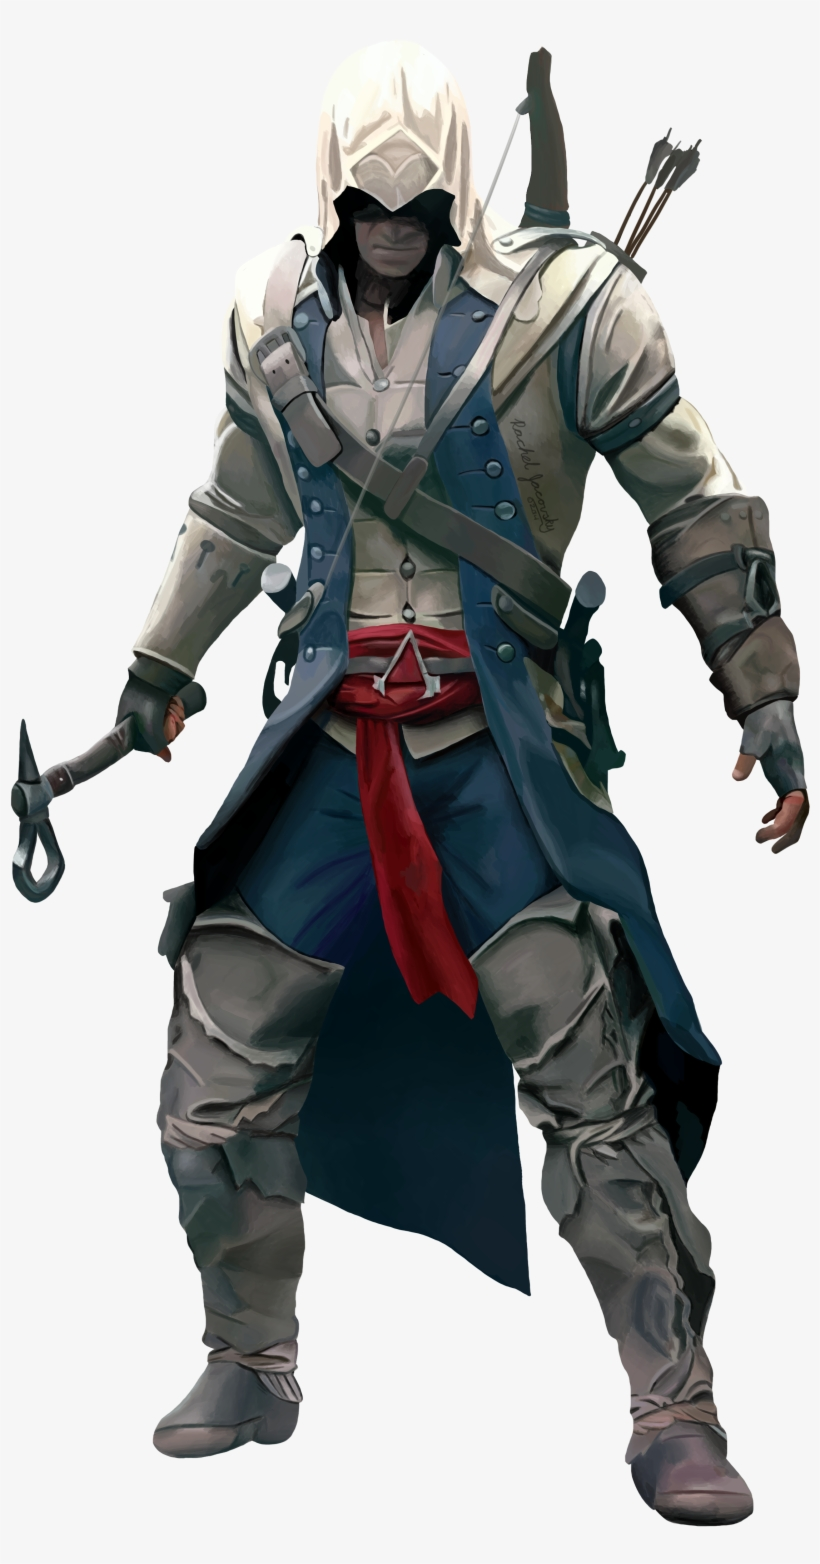 Connor Kenway Coolest Assassin S Creed Outfit Transparent Png